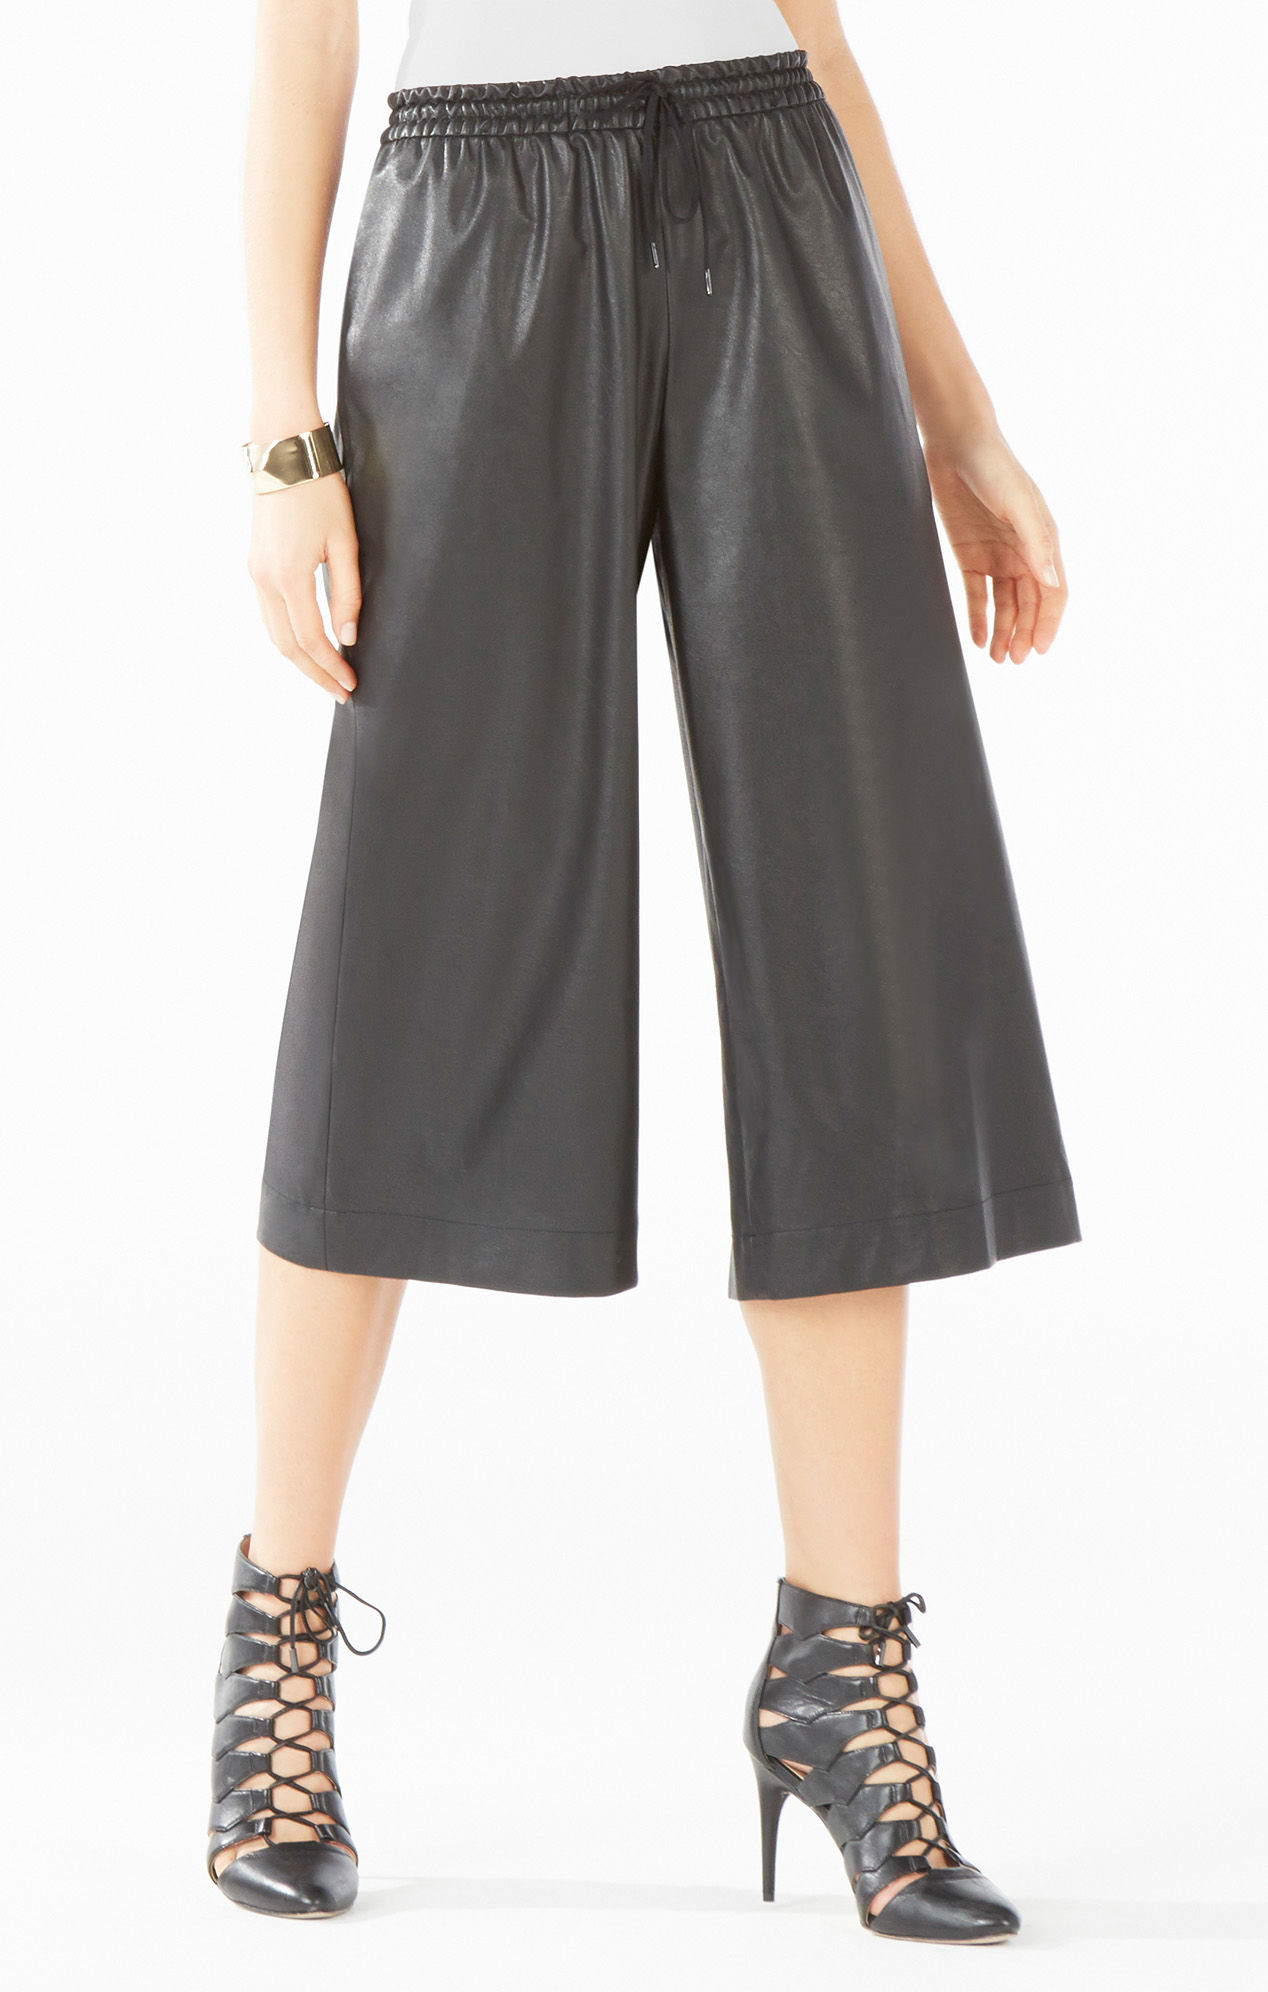 chloe bags prices - Bcbgmaxazria Hendrick Faux-leather Culotte in Black - Save 50%   Lyst